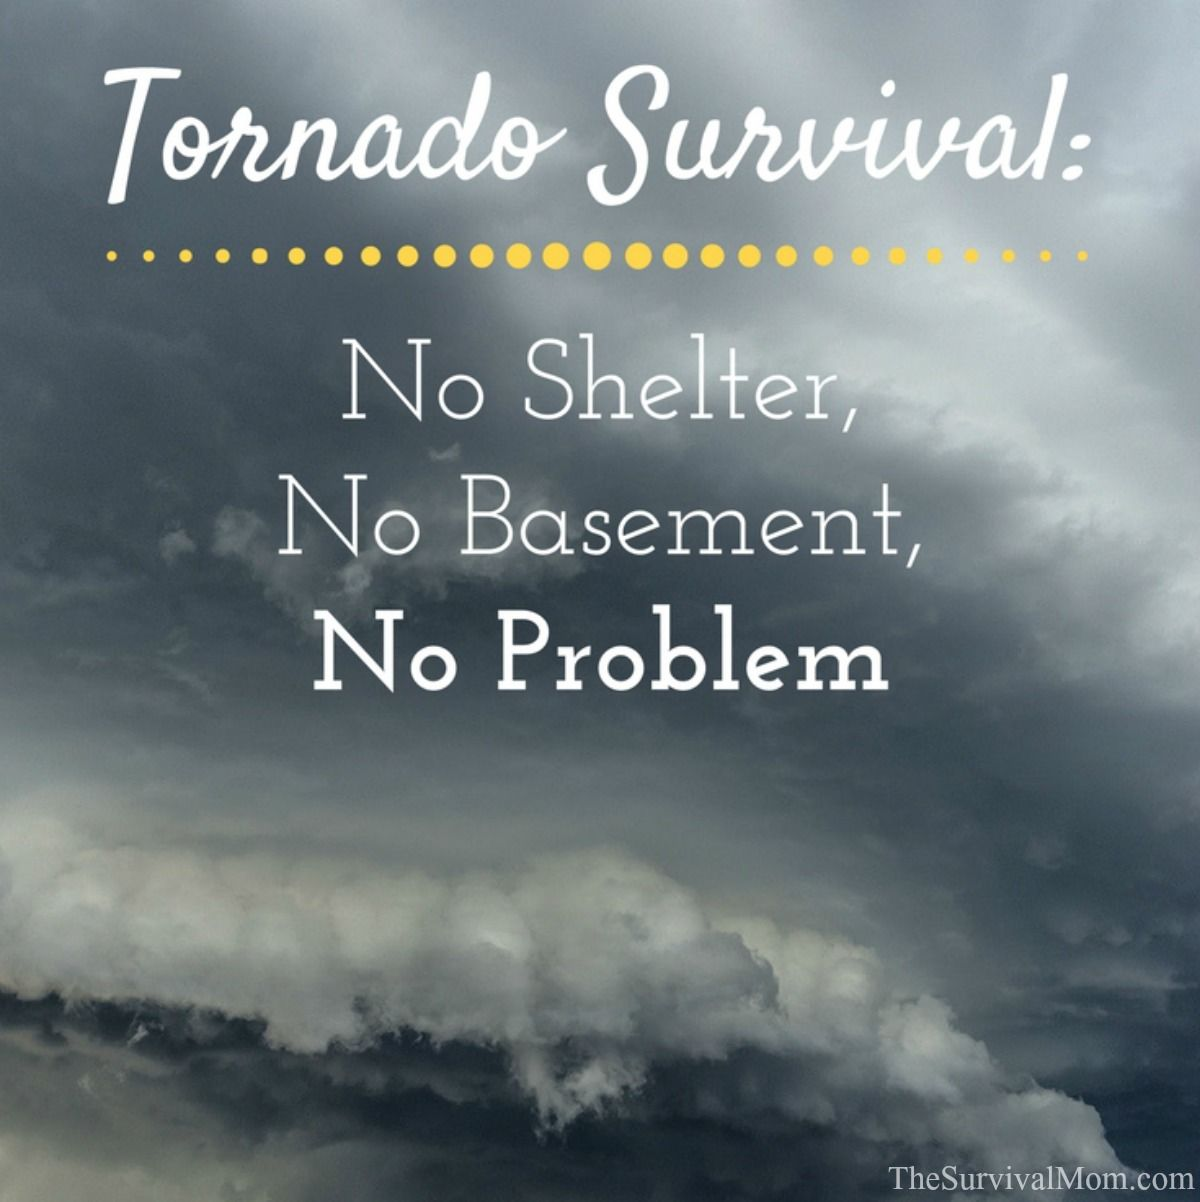 safest place to be during a tornado if you don't have a basement, tornado survival